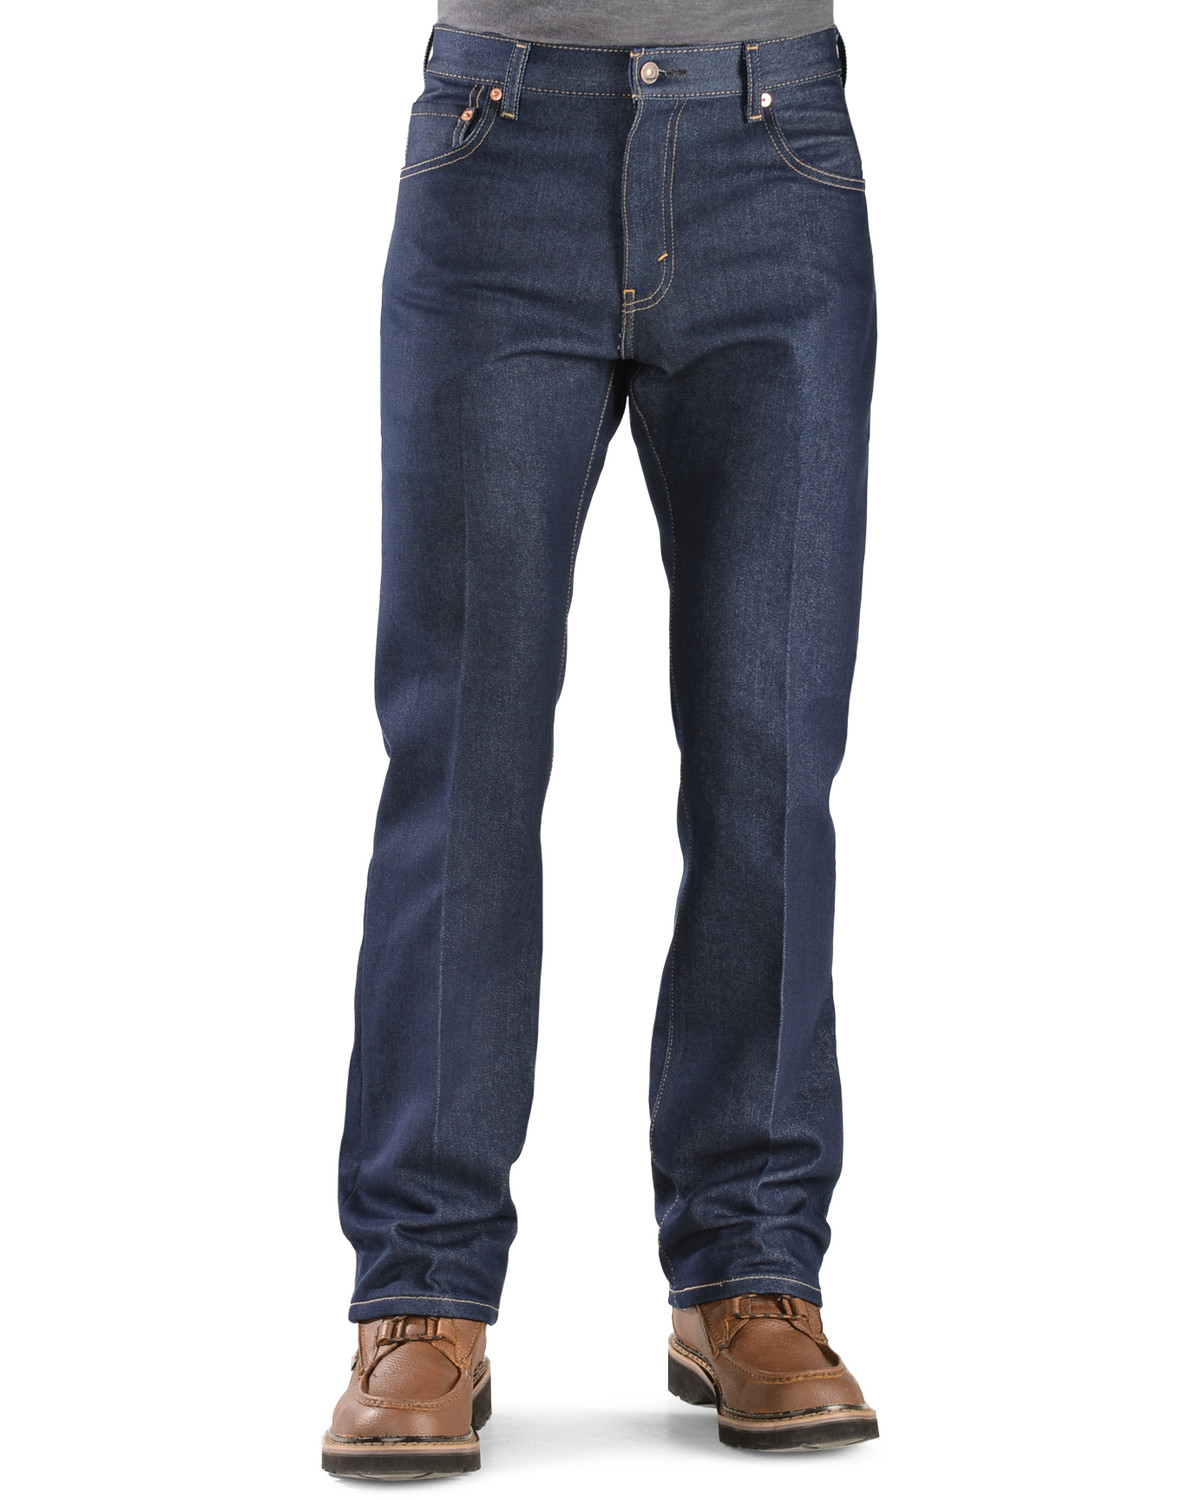 Levi's ® 517 Jeans - Boot Cut Stretch | Sheplers